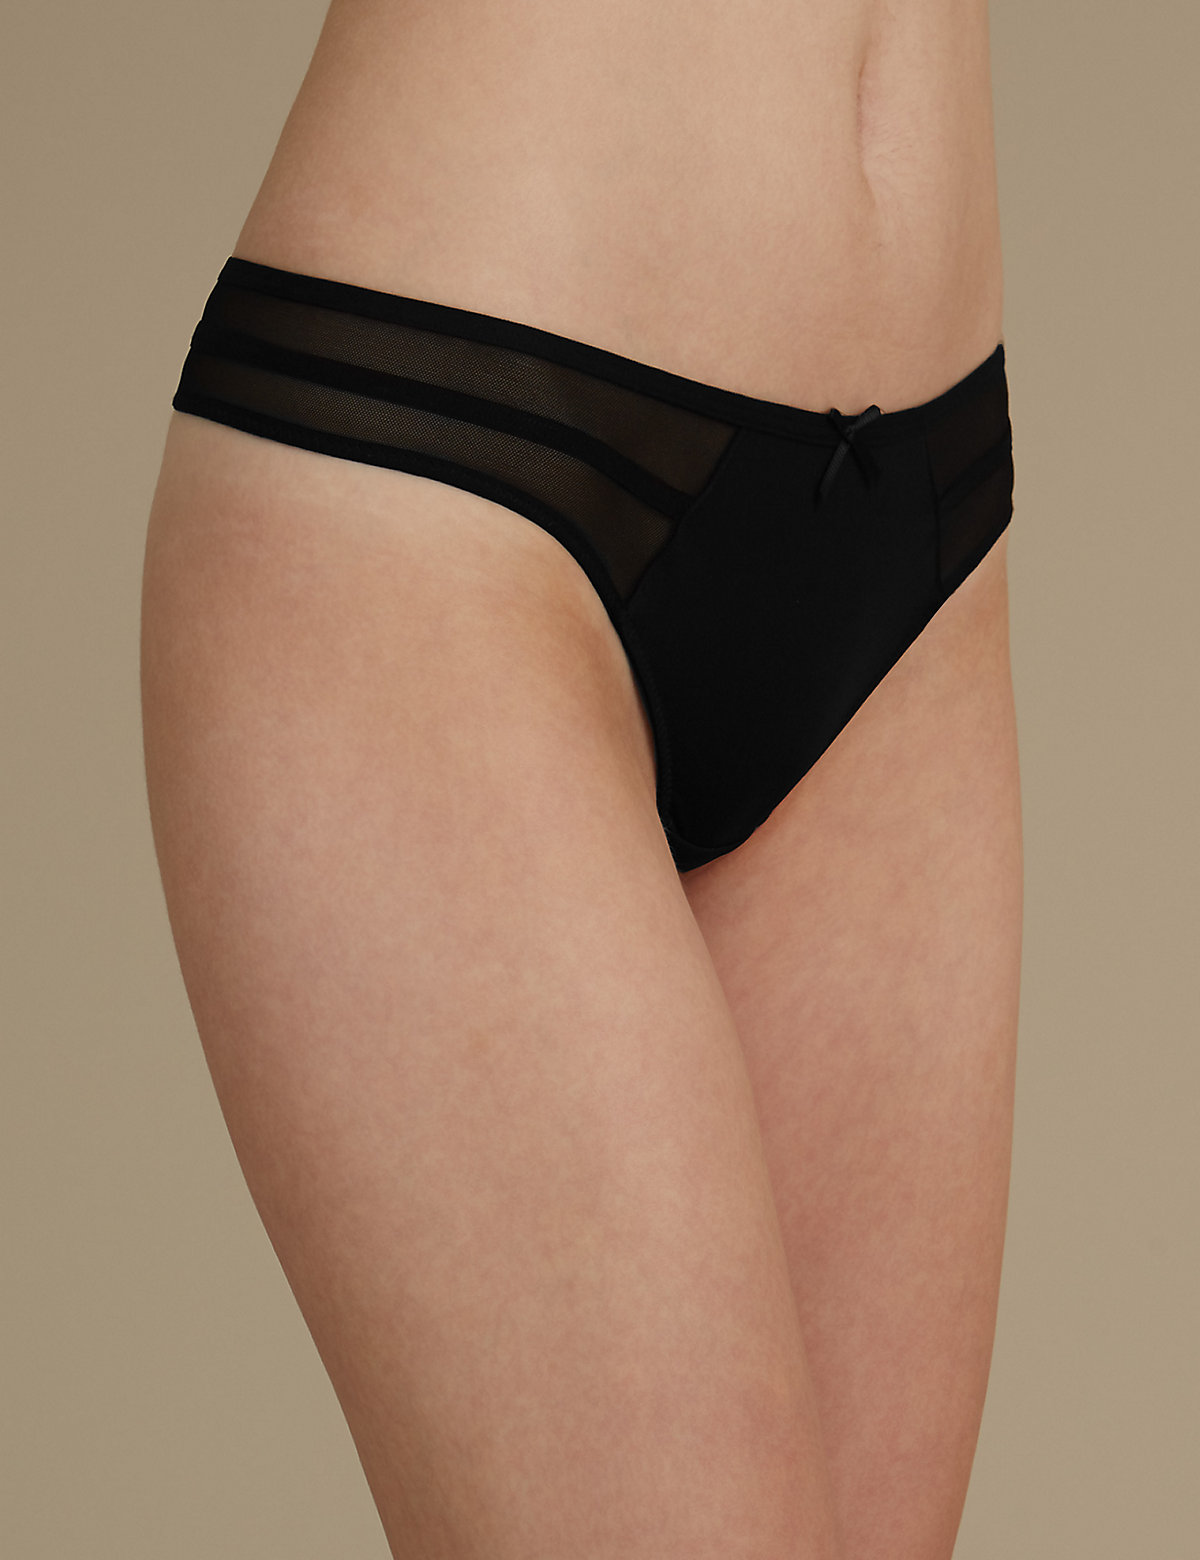 M&s Collection Strapping And Mesh Thong